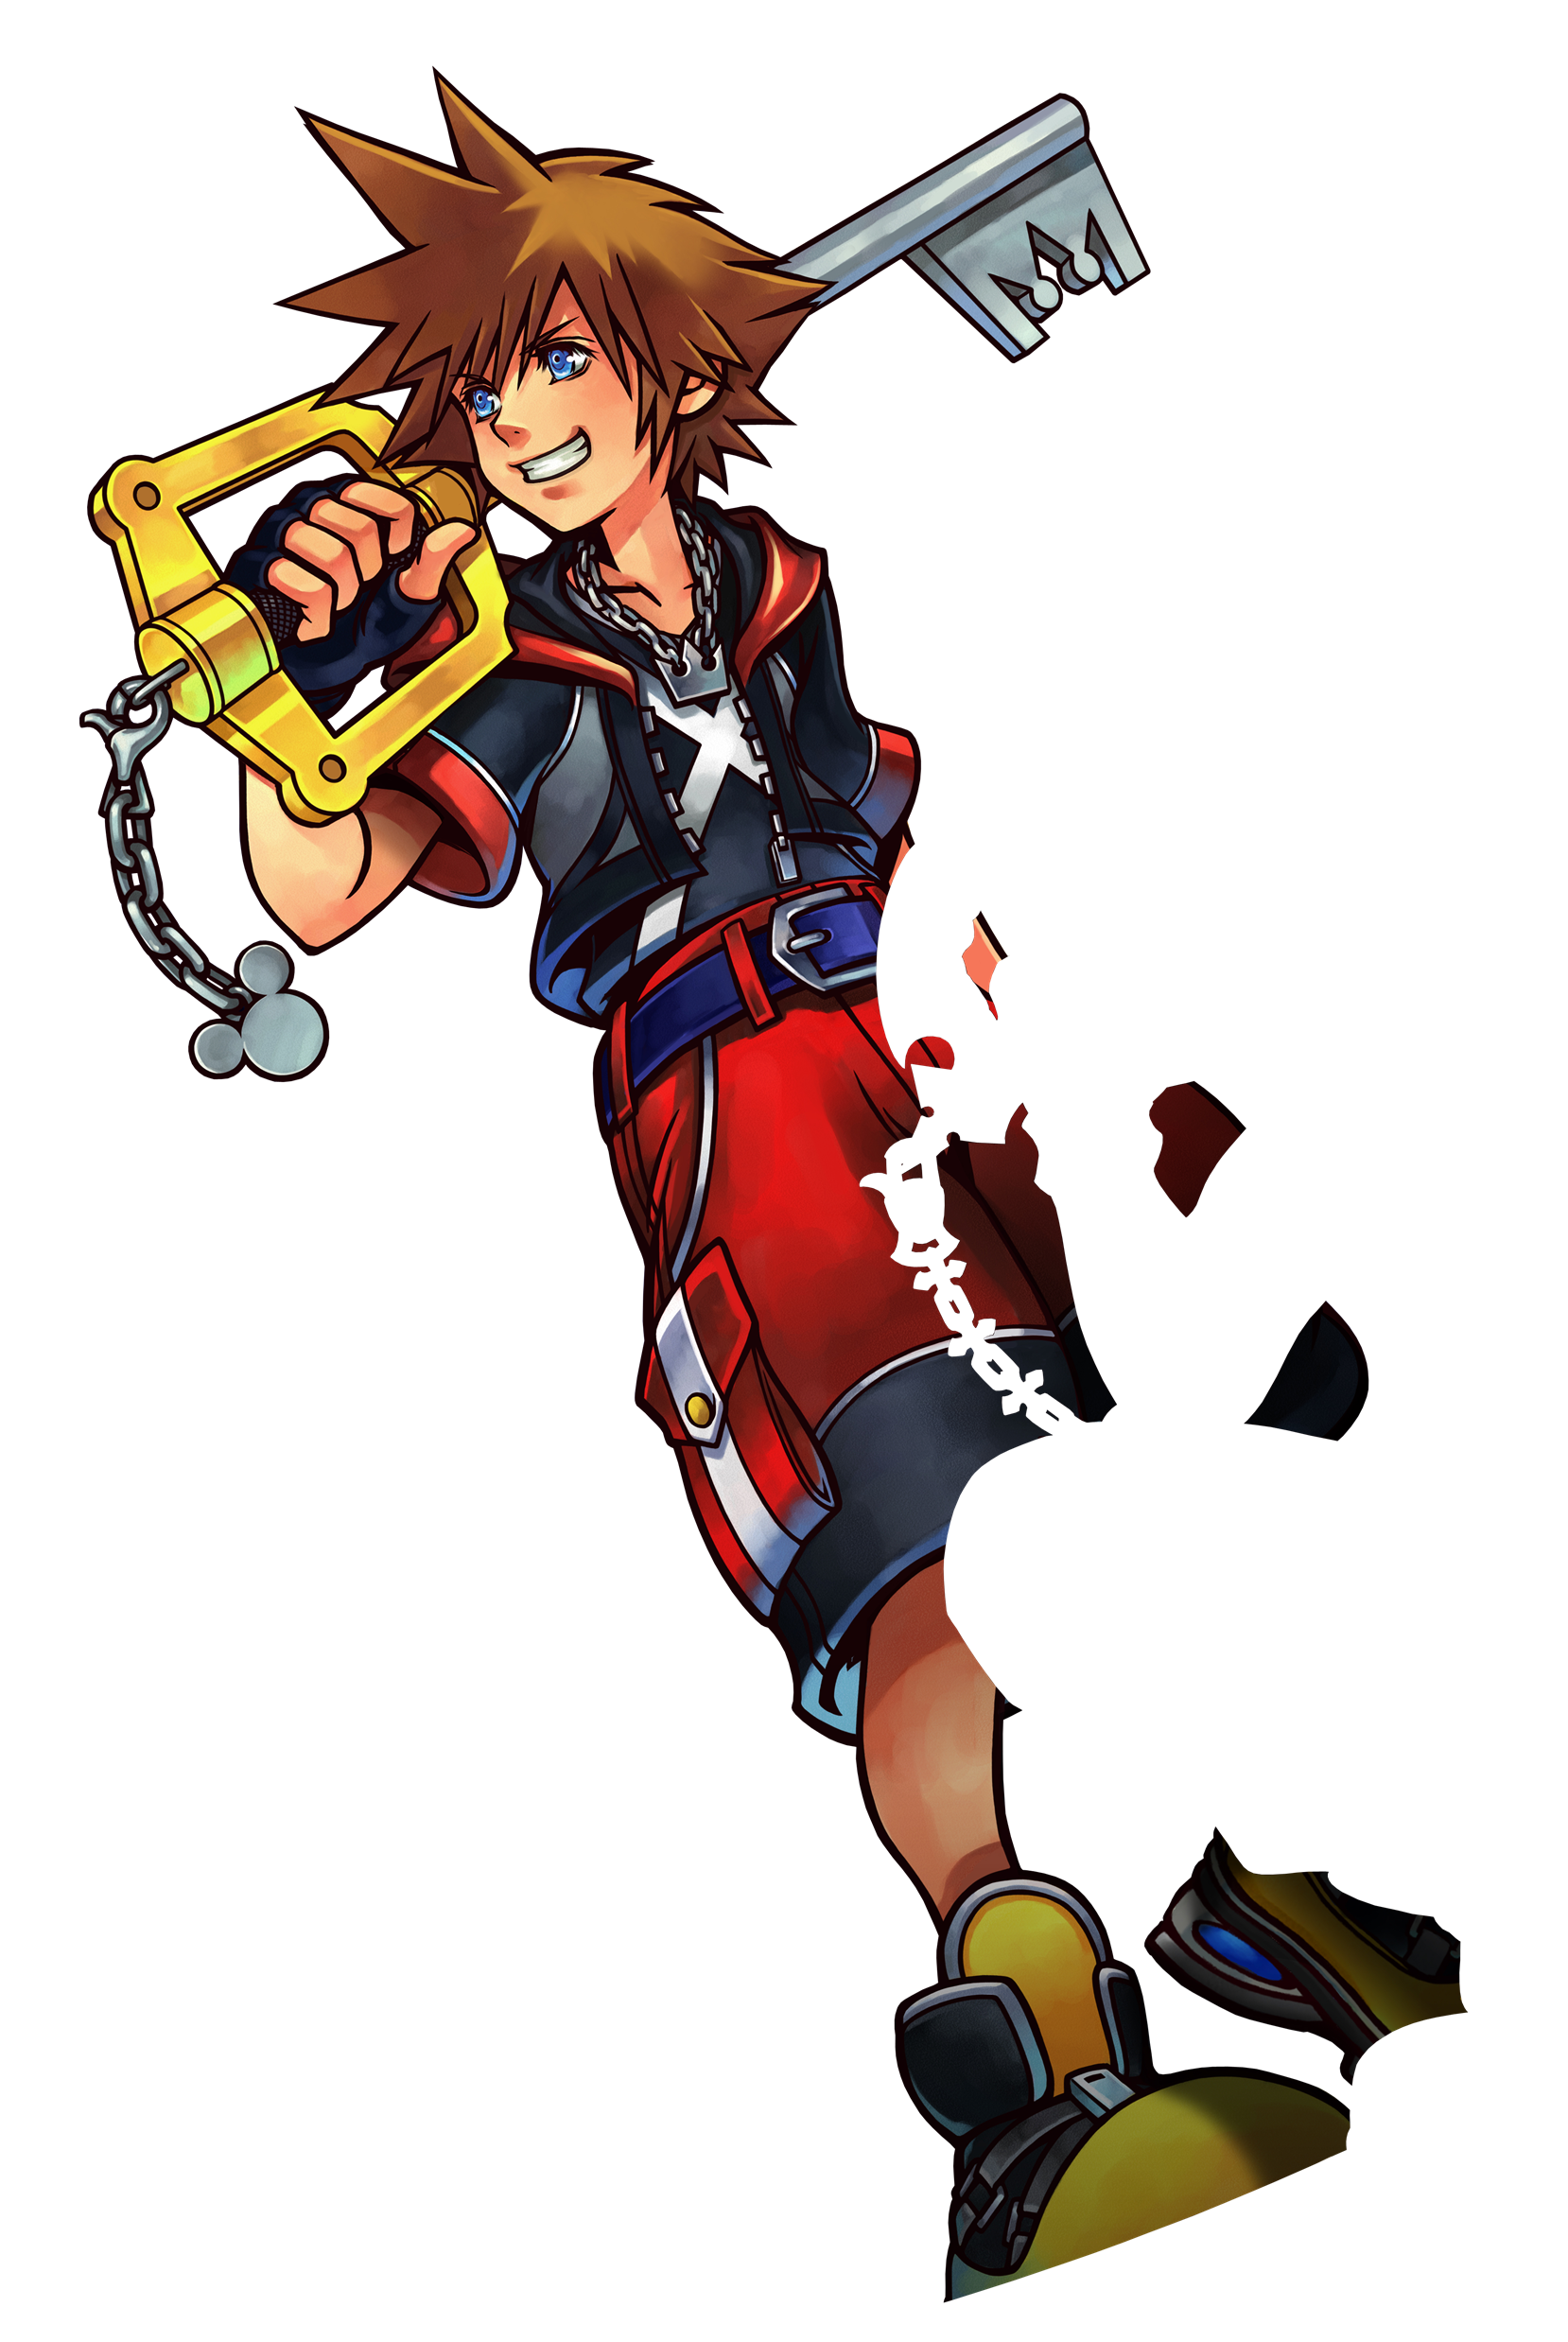 Kingdom Hearts III PNG Transparent Image.